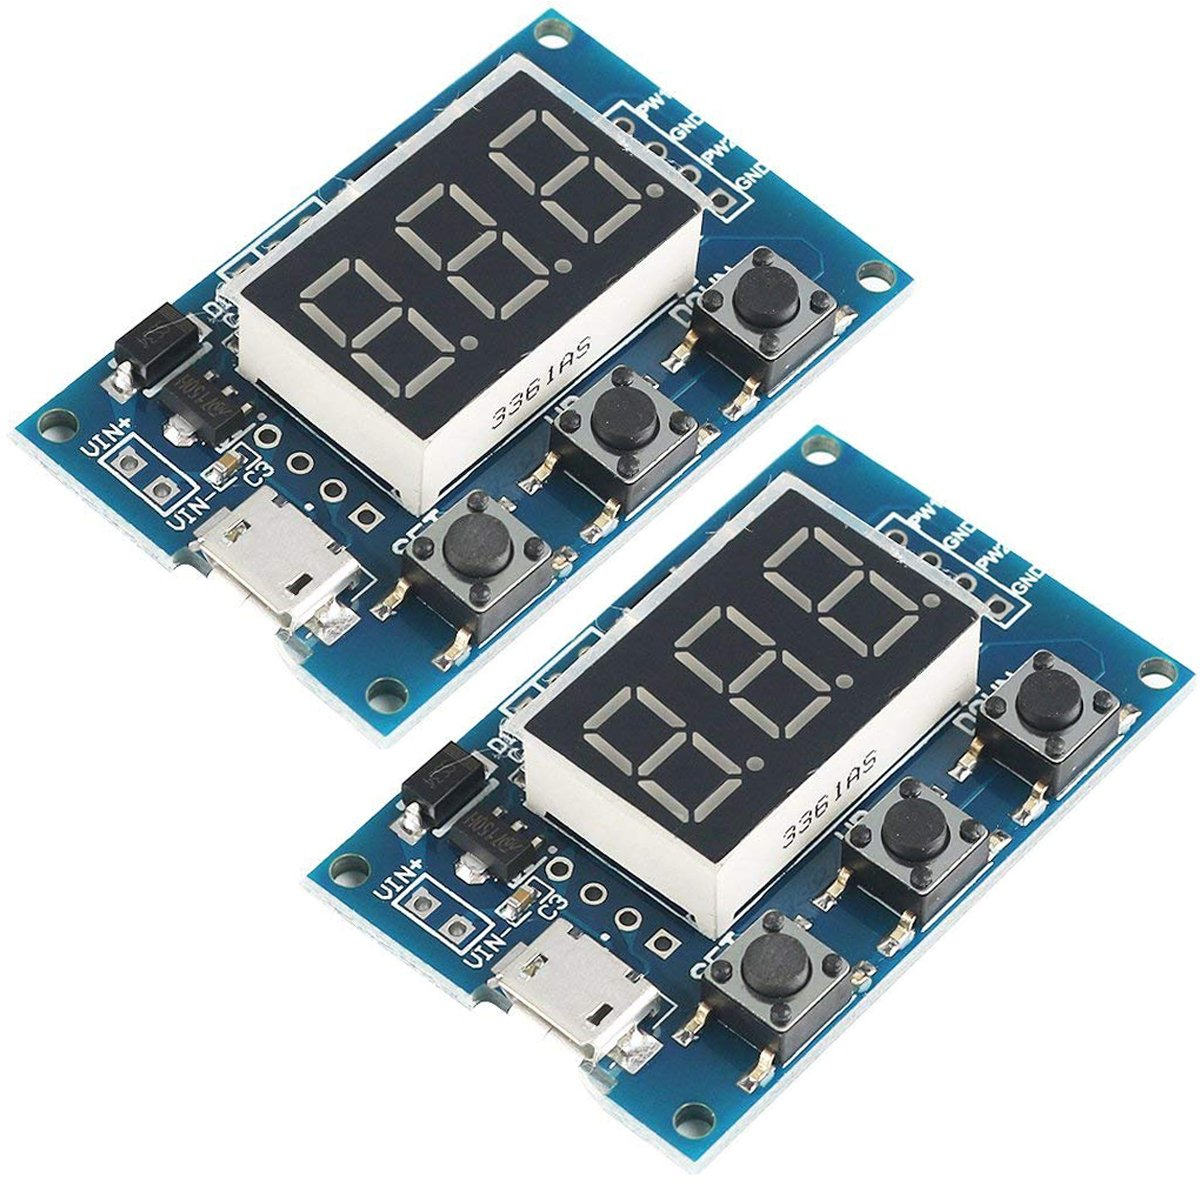 MakerFocus 2pcs Digital 2 Channal PWM Square Wave Pulse Signal Generator Adjustable Frequency Duty Cycle 100% 1Hz-150KHz for Stepper Motor Driver